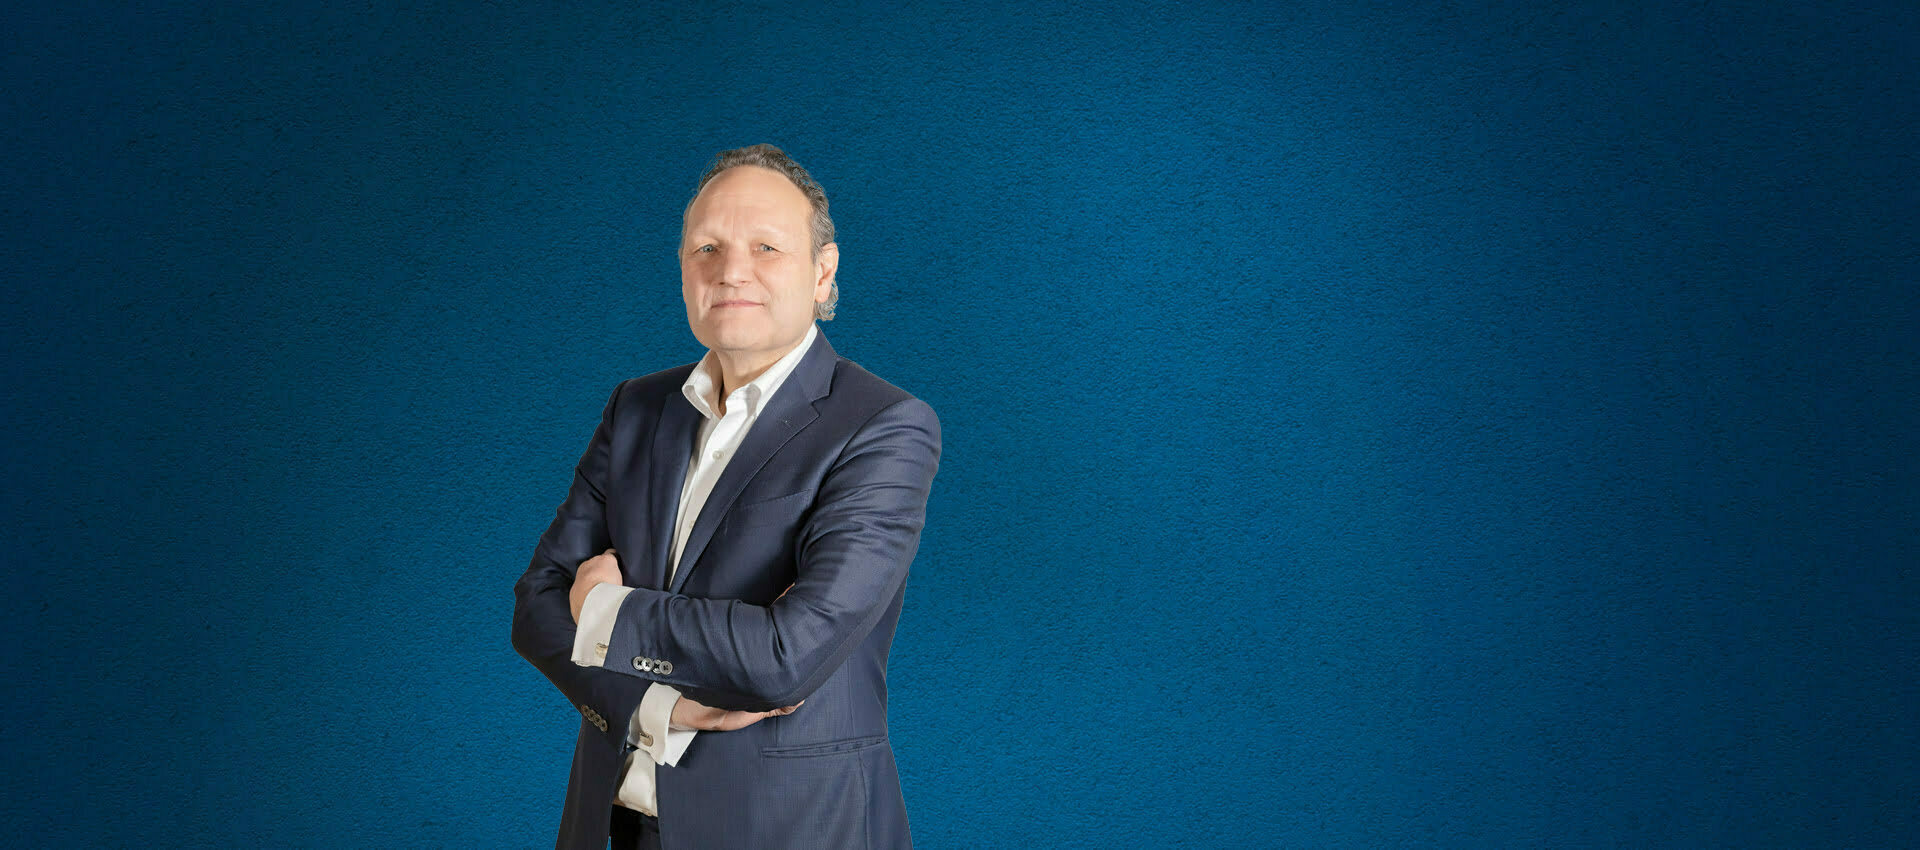 Boels Zanders expands M&A team with arrival of experienced Roald Subnel